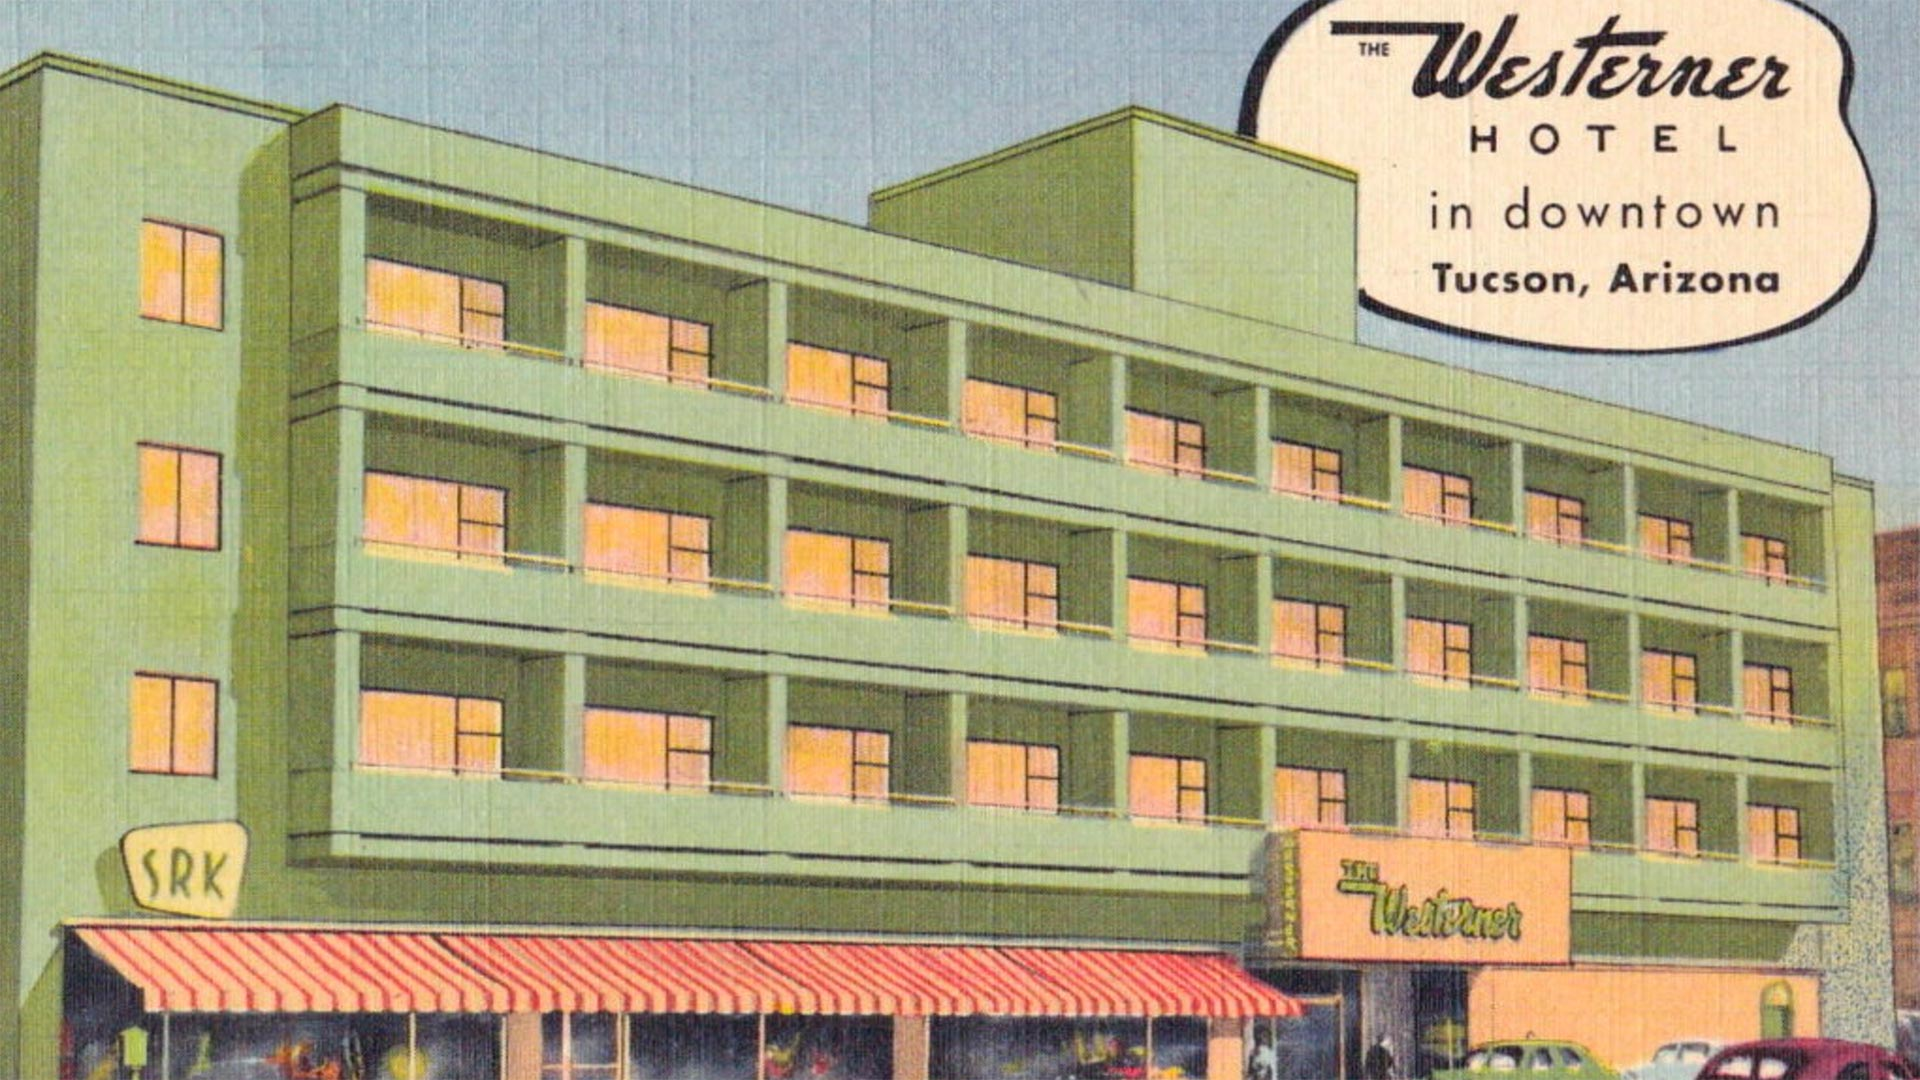 Tucson Modernism Week 2017 takes place Saturday, Oct. 7 through Sunday Oct. 15.